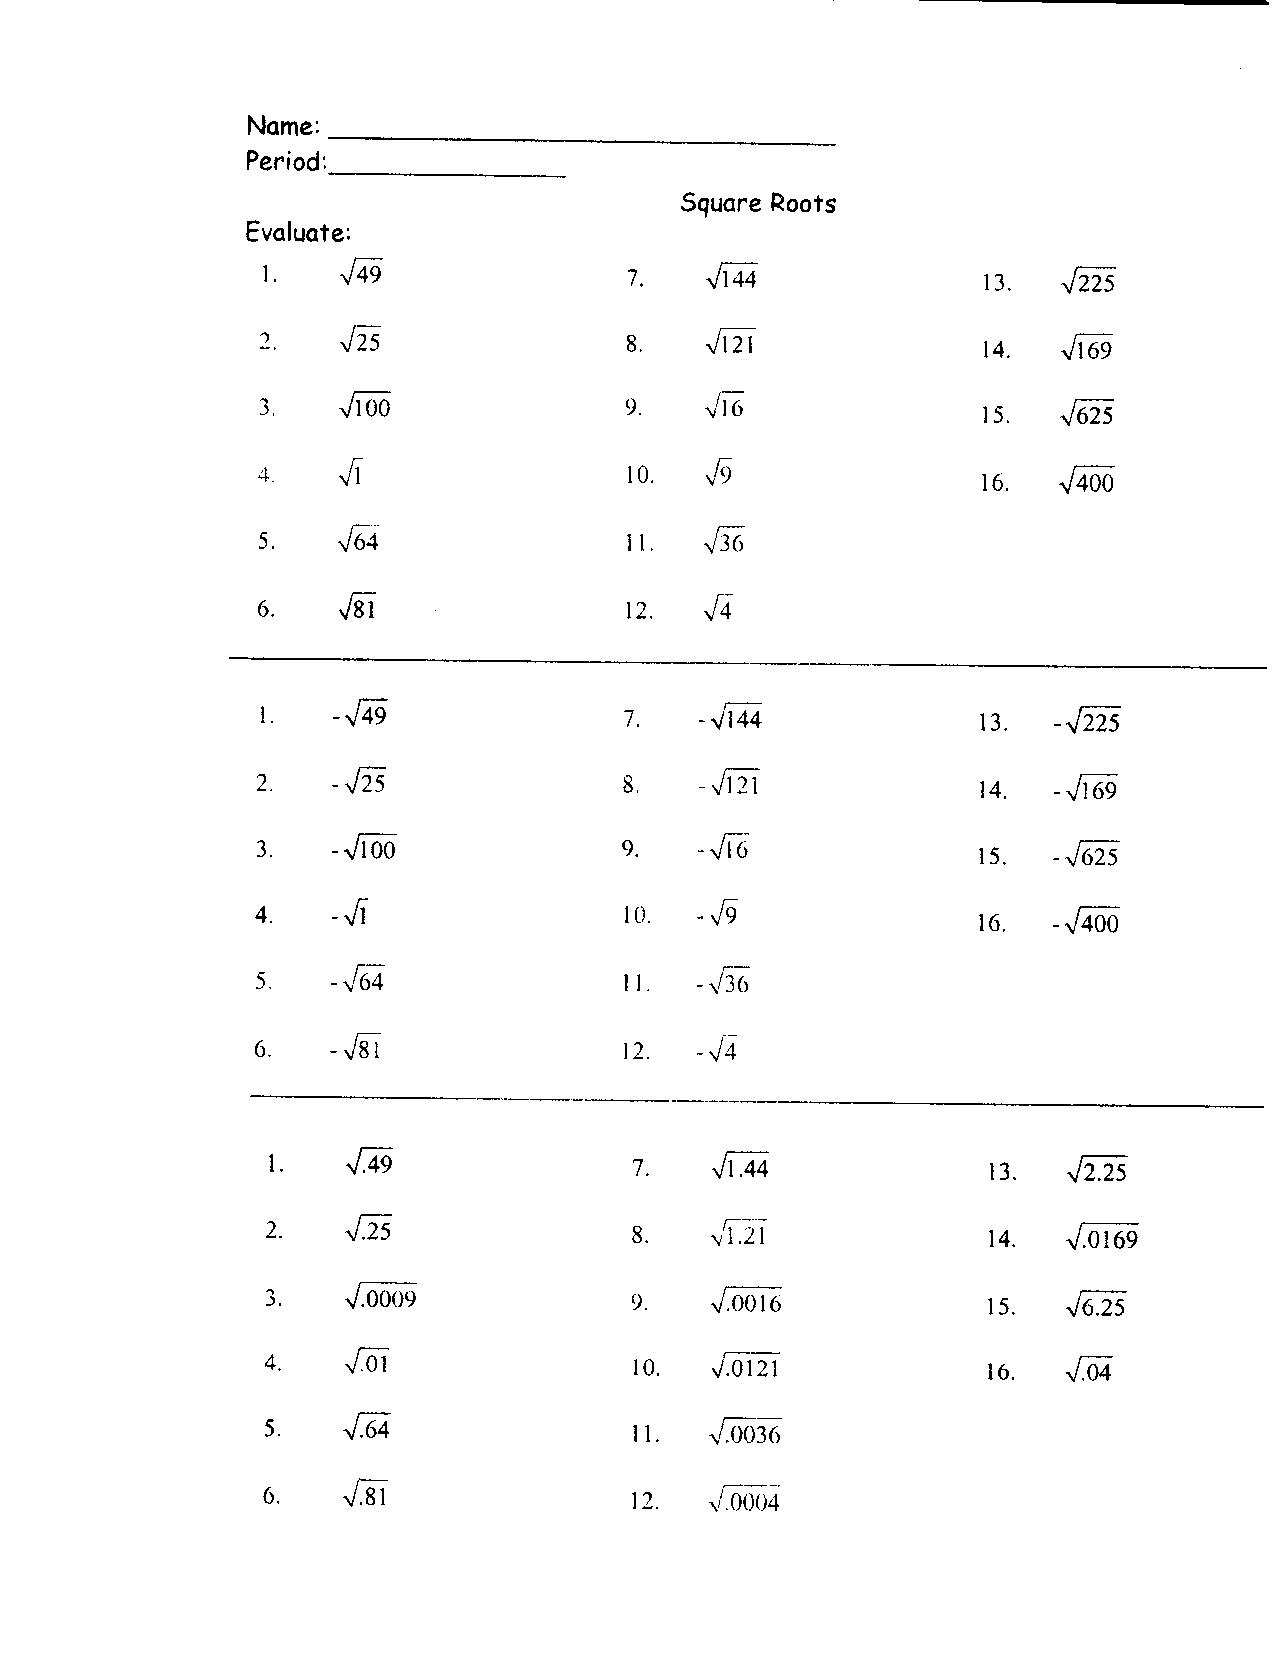 Estimating Square Roots Worksheet Virallyapp Printables Worksheets